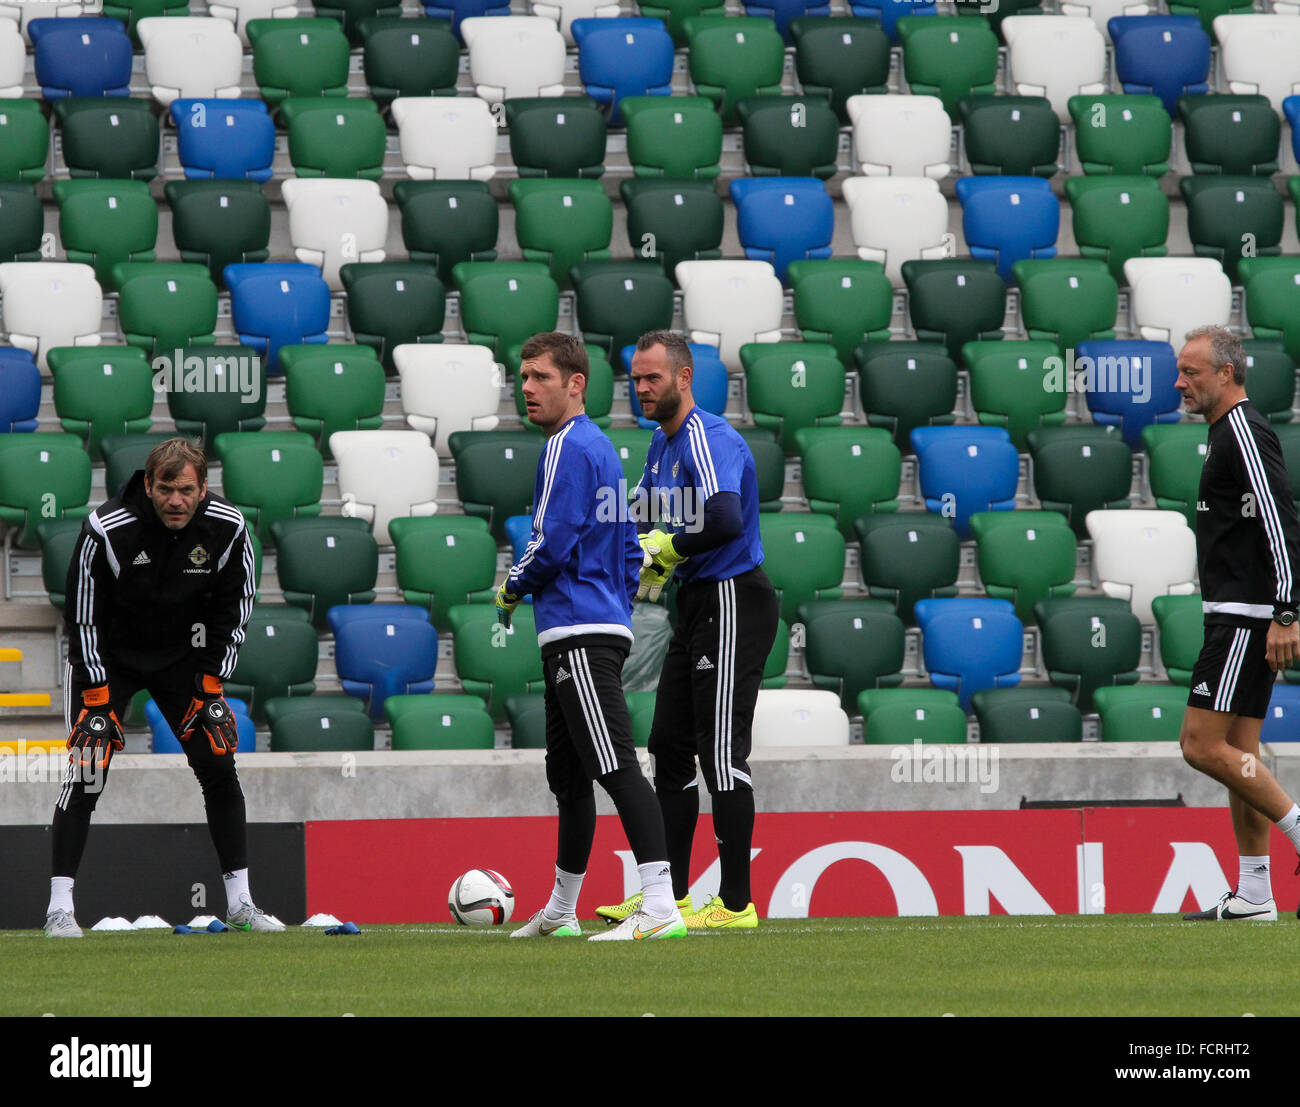 Northern Ireland international goalkeepers taking part in a Northern Ireland training session (September 2015). - Stock Image